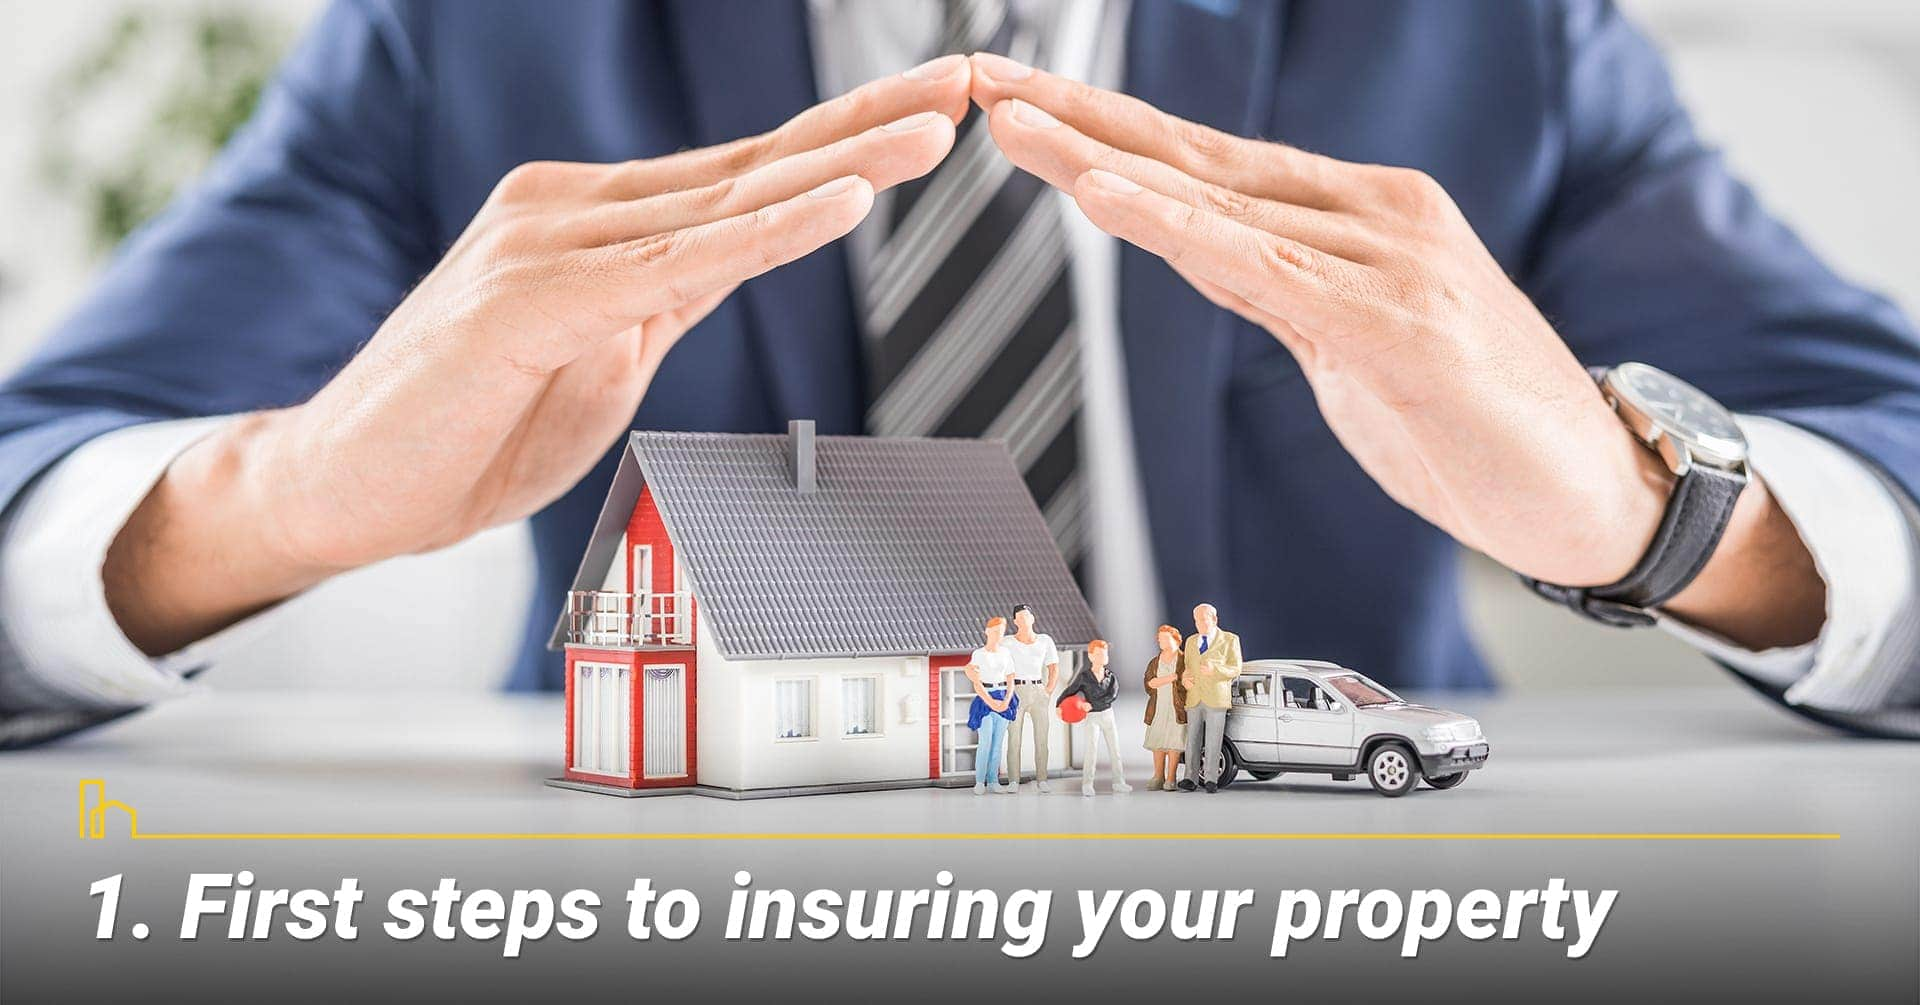 First steps to insuring your property, insure your property